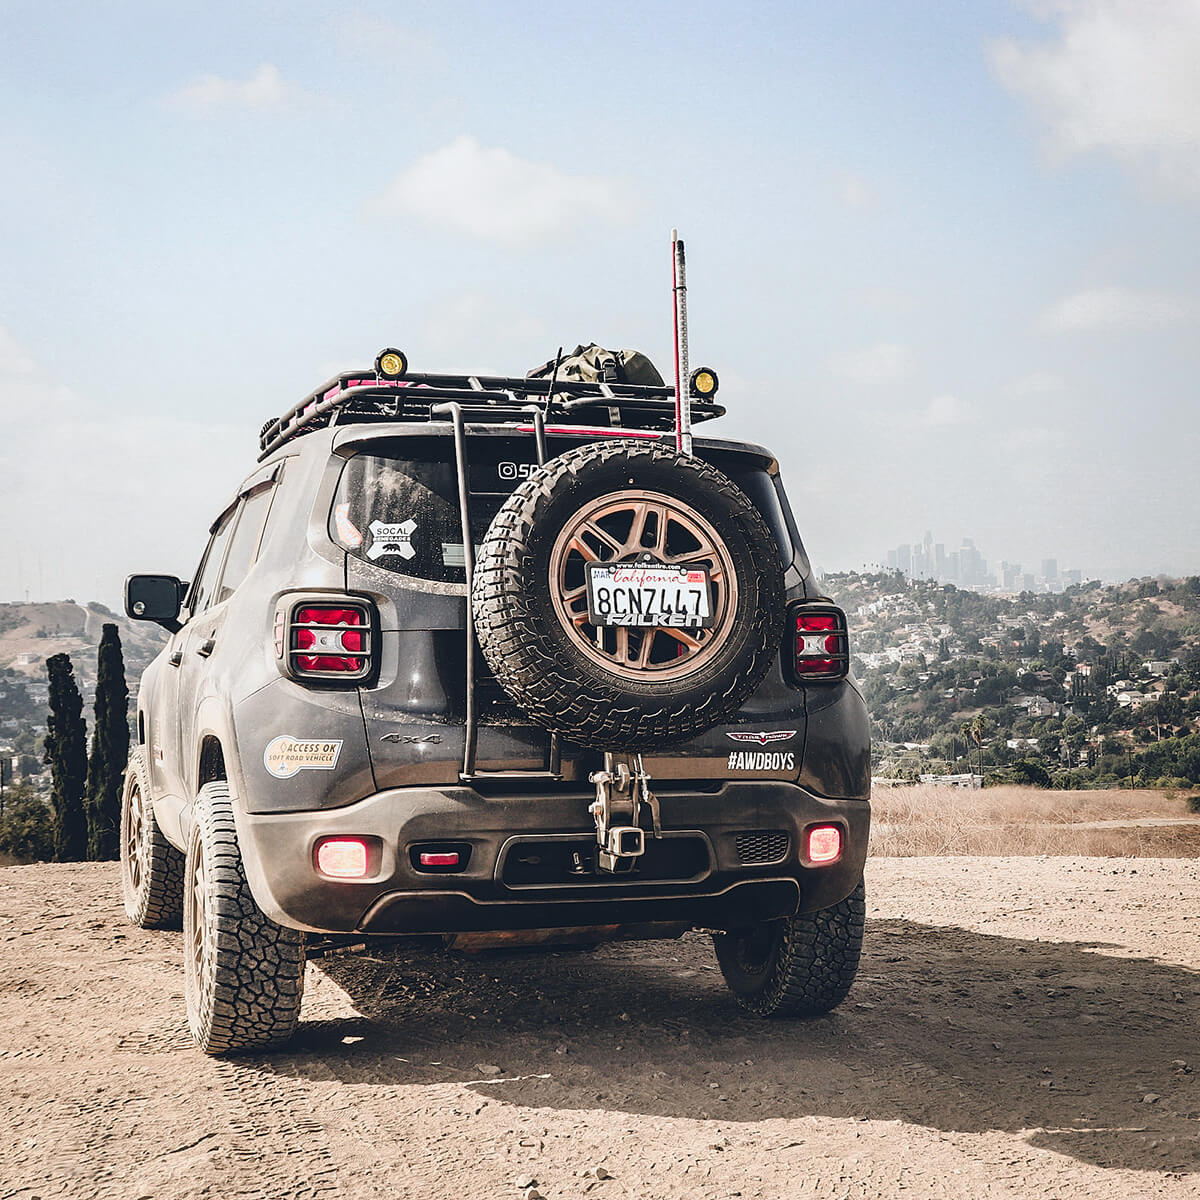 Jeep Renegade Hitch and spare tire carrier